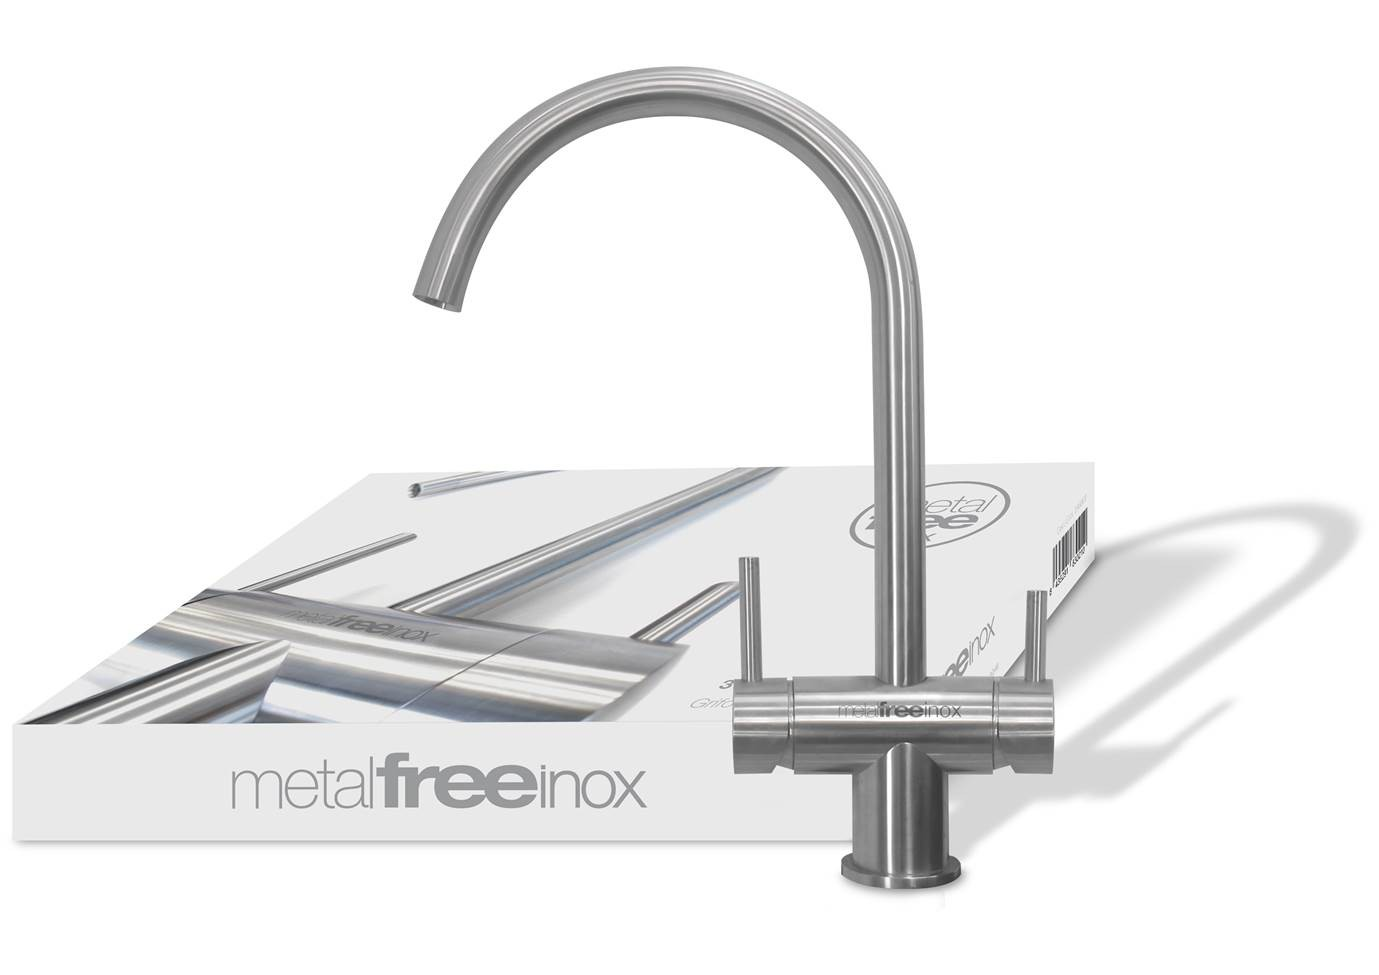 osmio_inox_brushed_chrome_3-way_tap_metal-free_